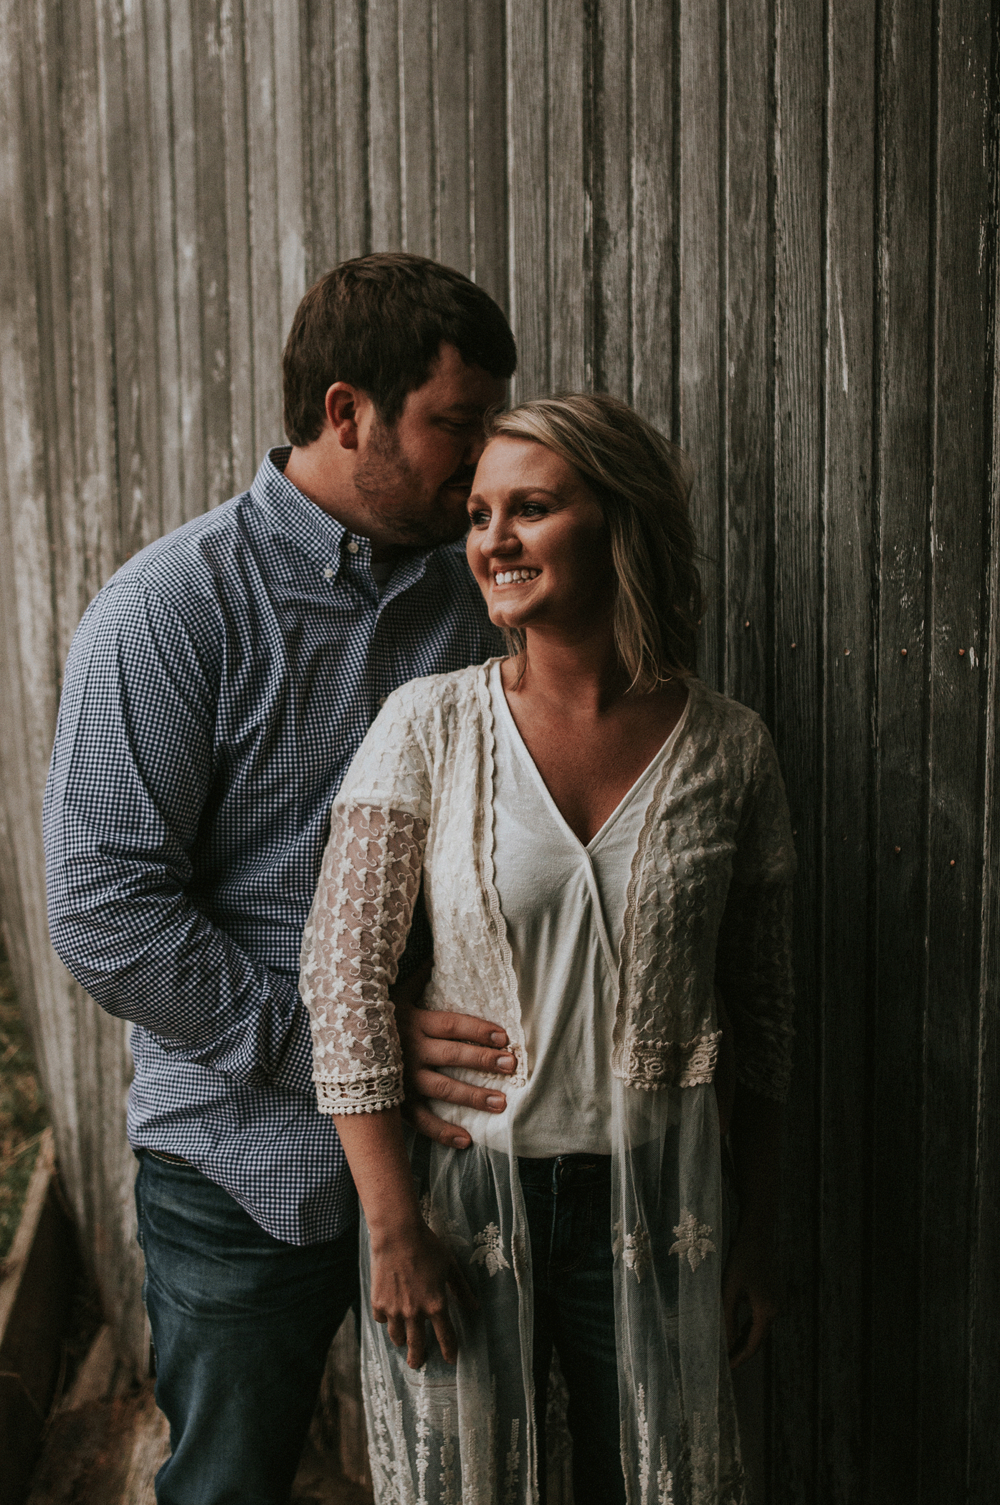 kaylie-sirek-nebraska-wedding-engagement-photographer-photography-grand-island-kearney-hastings-lincoln-19.png